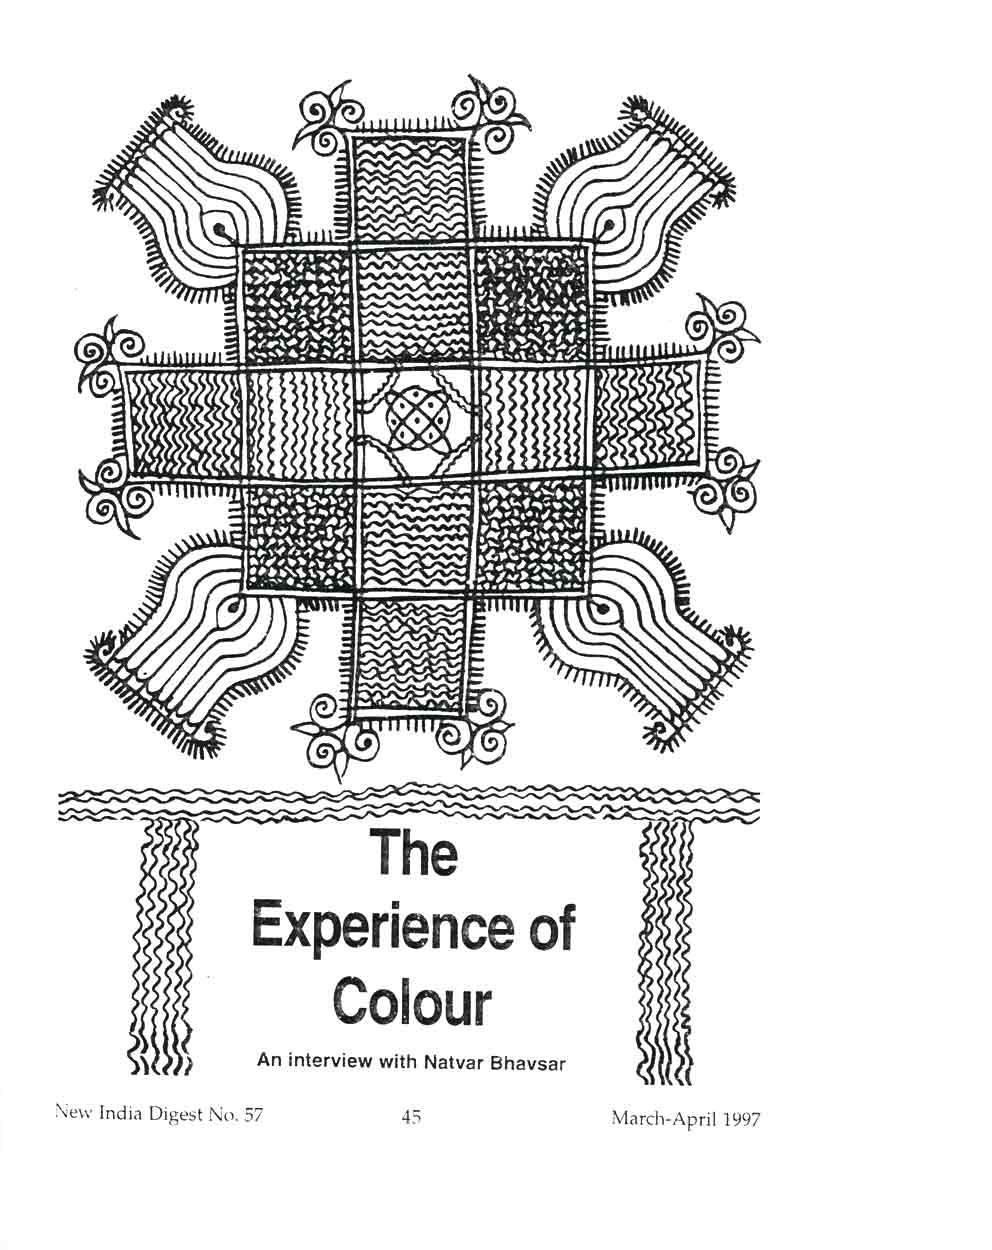 The Experience of Colour: An Interview With Natvar Bhavsar, article, pg 1